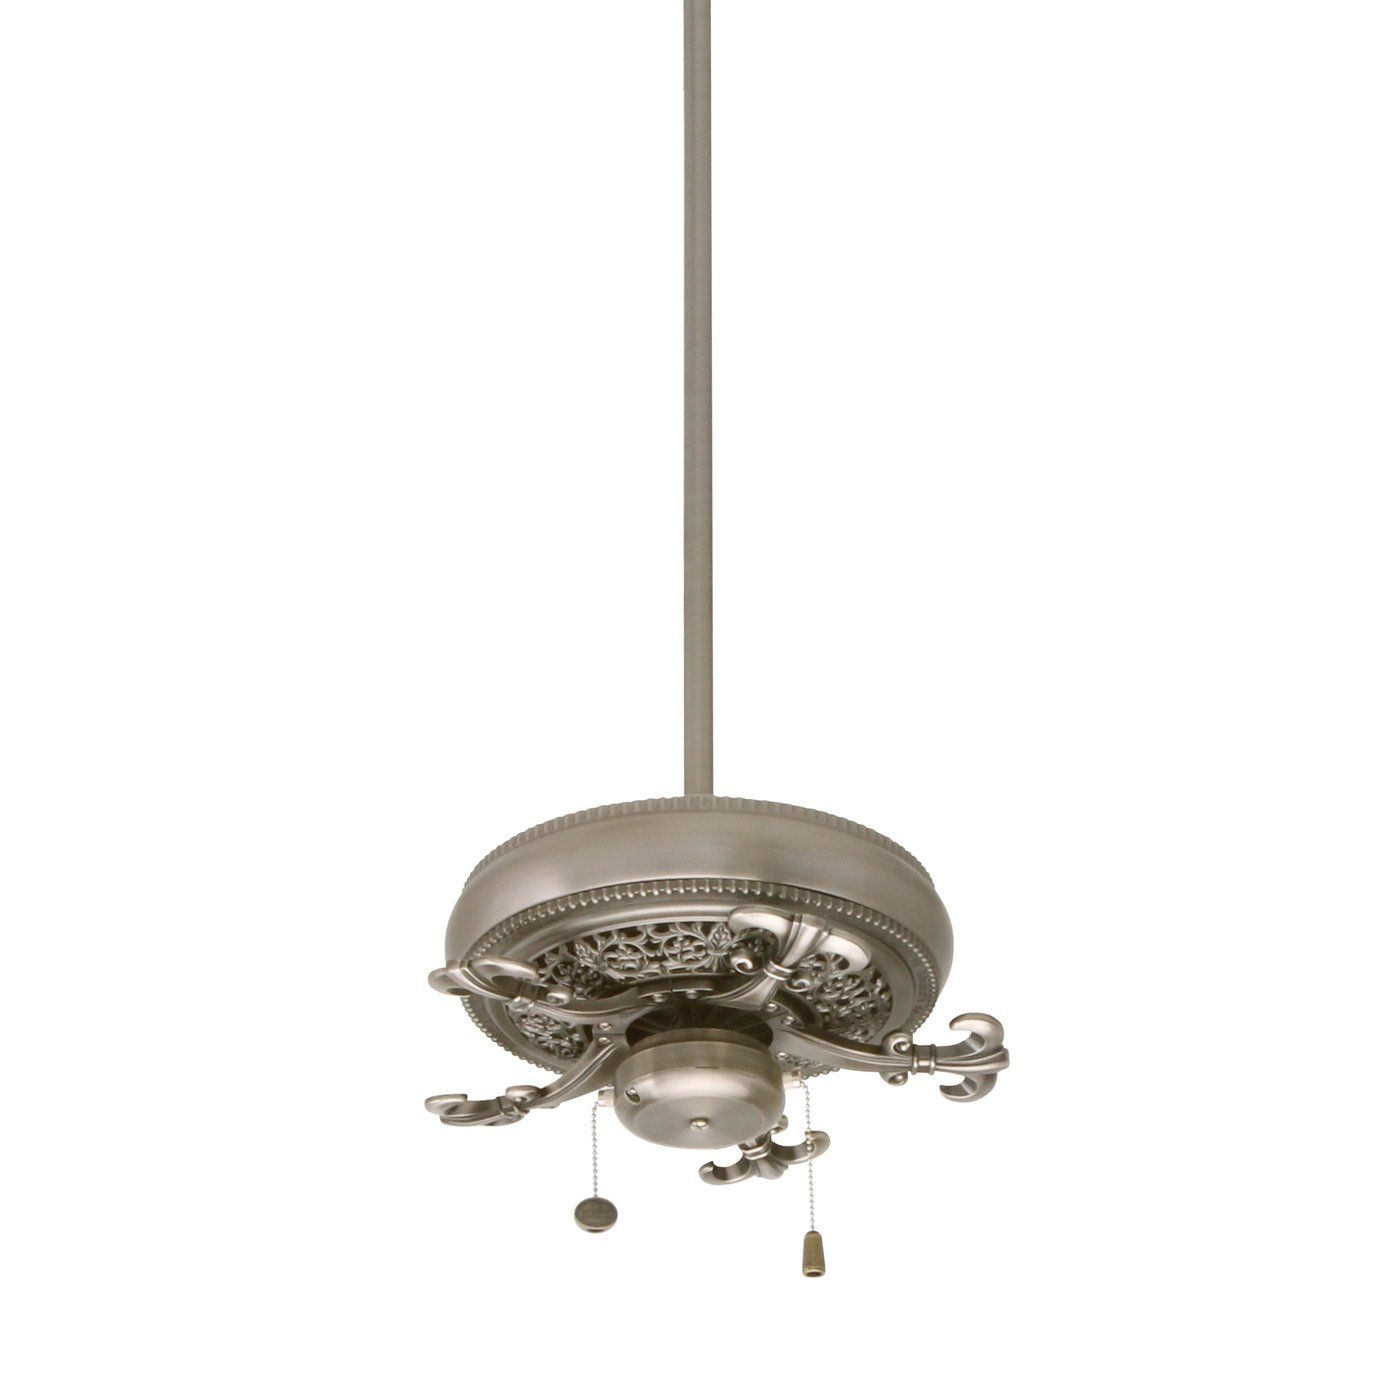 Emerson electric company cf4501 crown select ceiling fan lighting emerson electric company cf4501 crown select ceiling fan lighting universe aloadofball Image collections